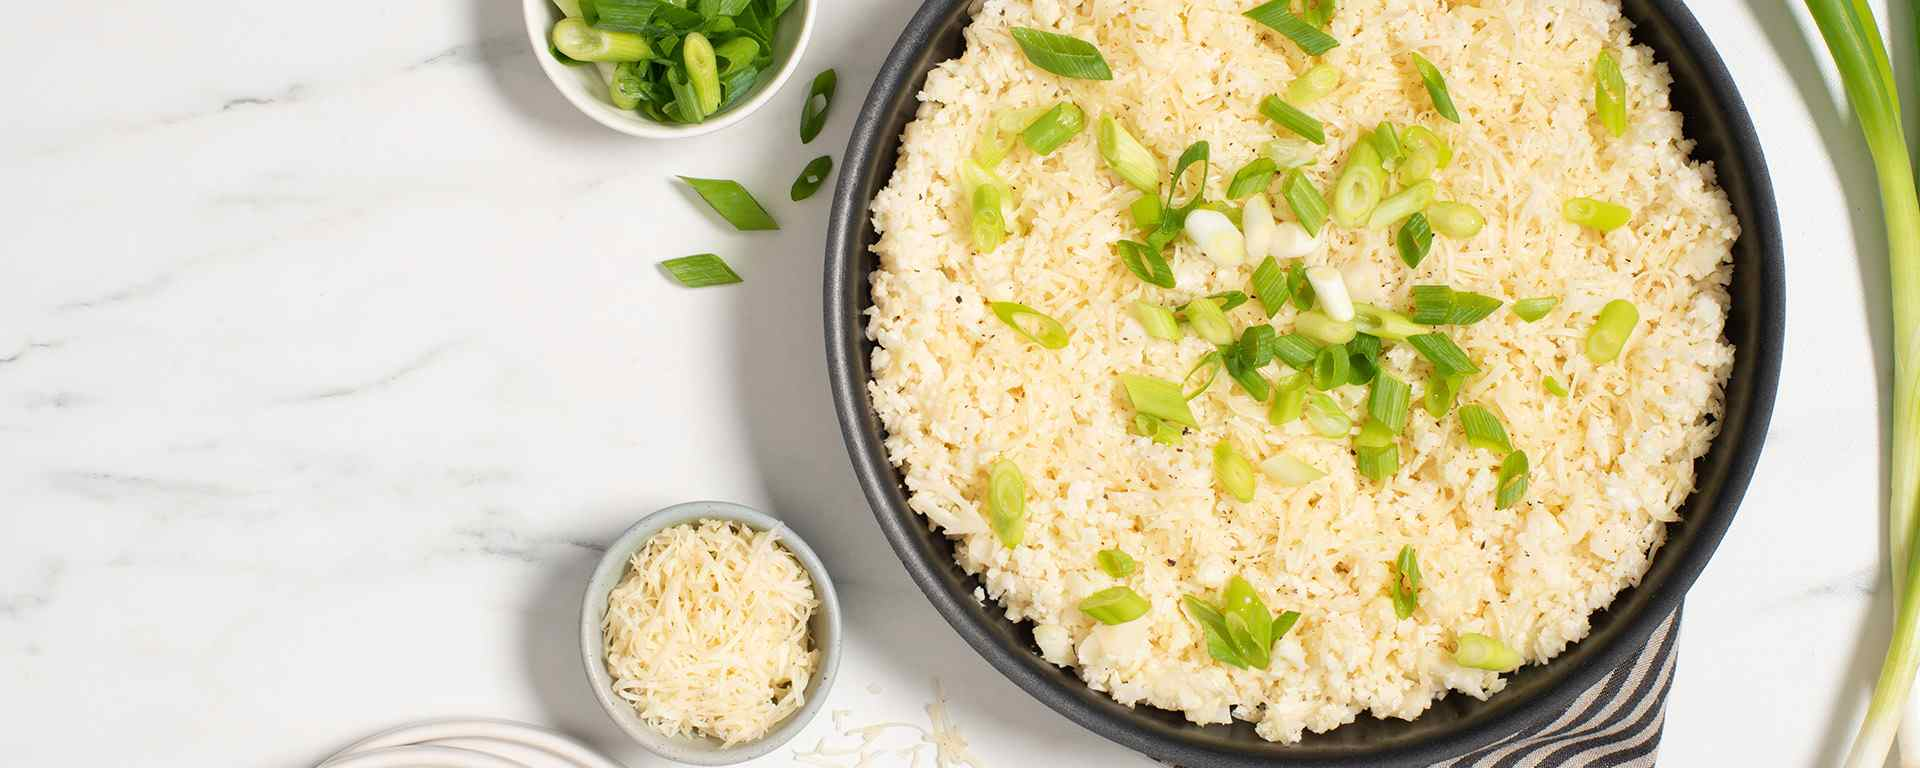 Photo for - Garlic and Pepper Cauliflower Rice